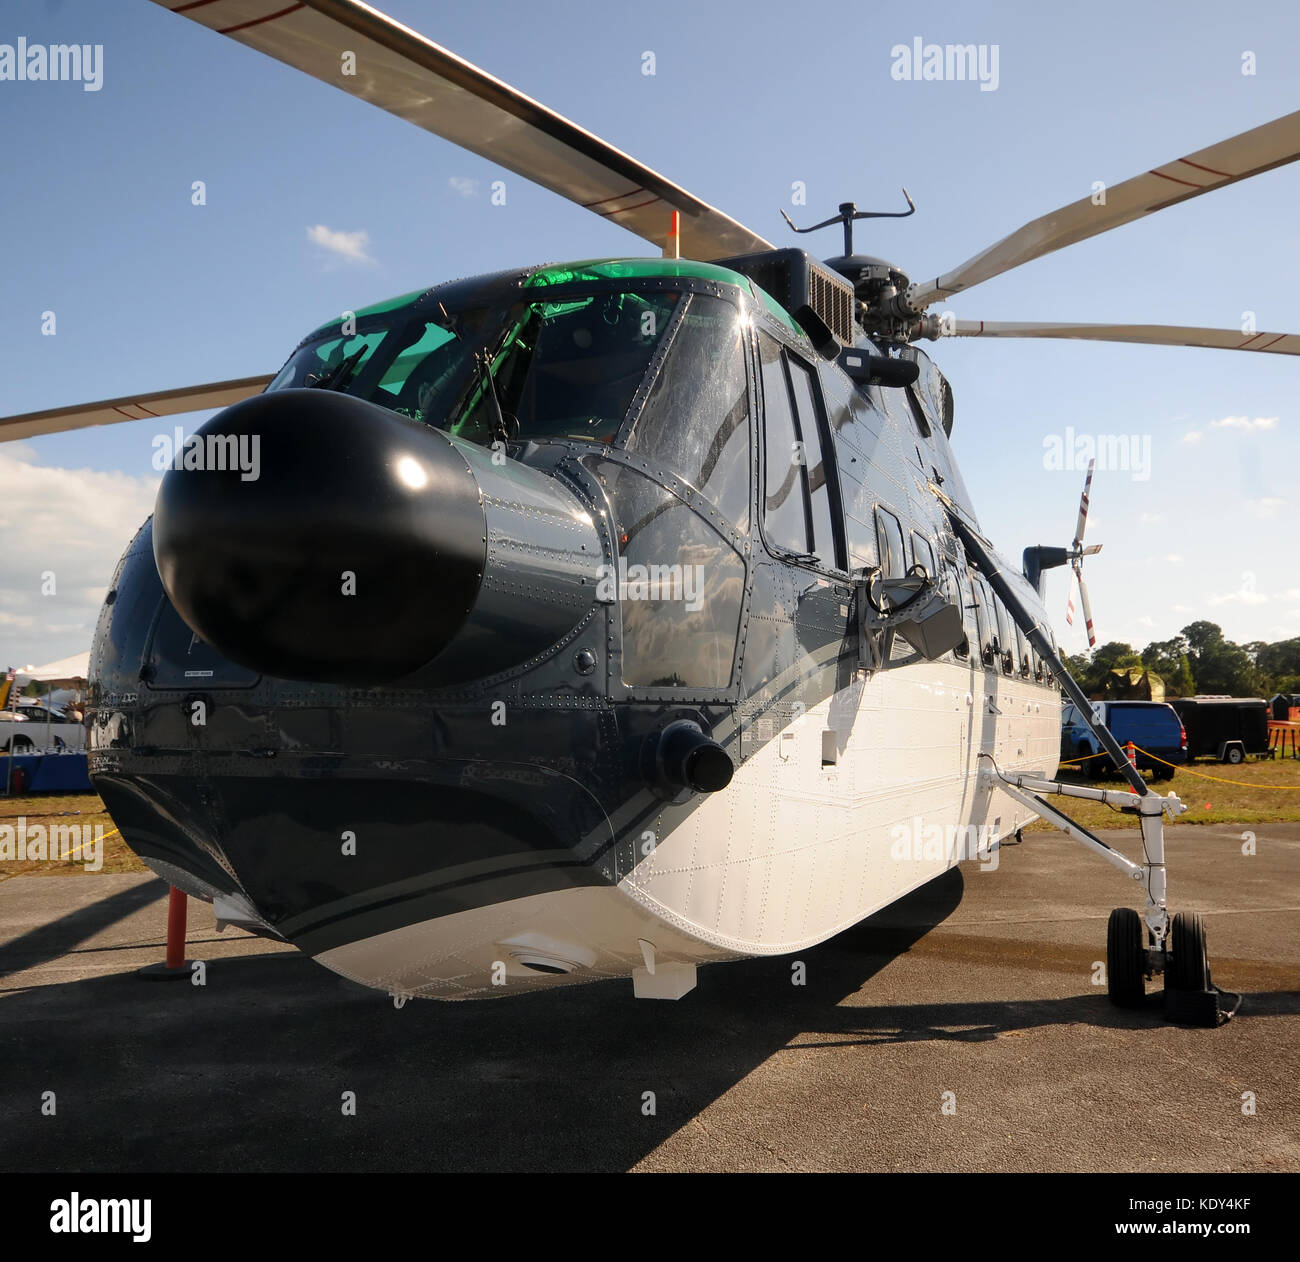 Modern heavy lift helicopter parked before flights - Stock Image